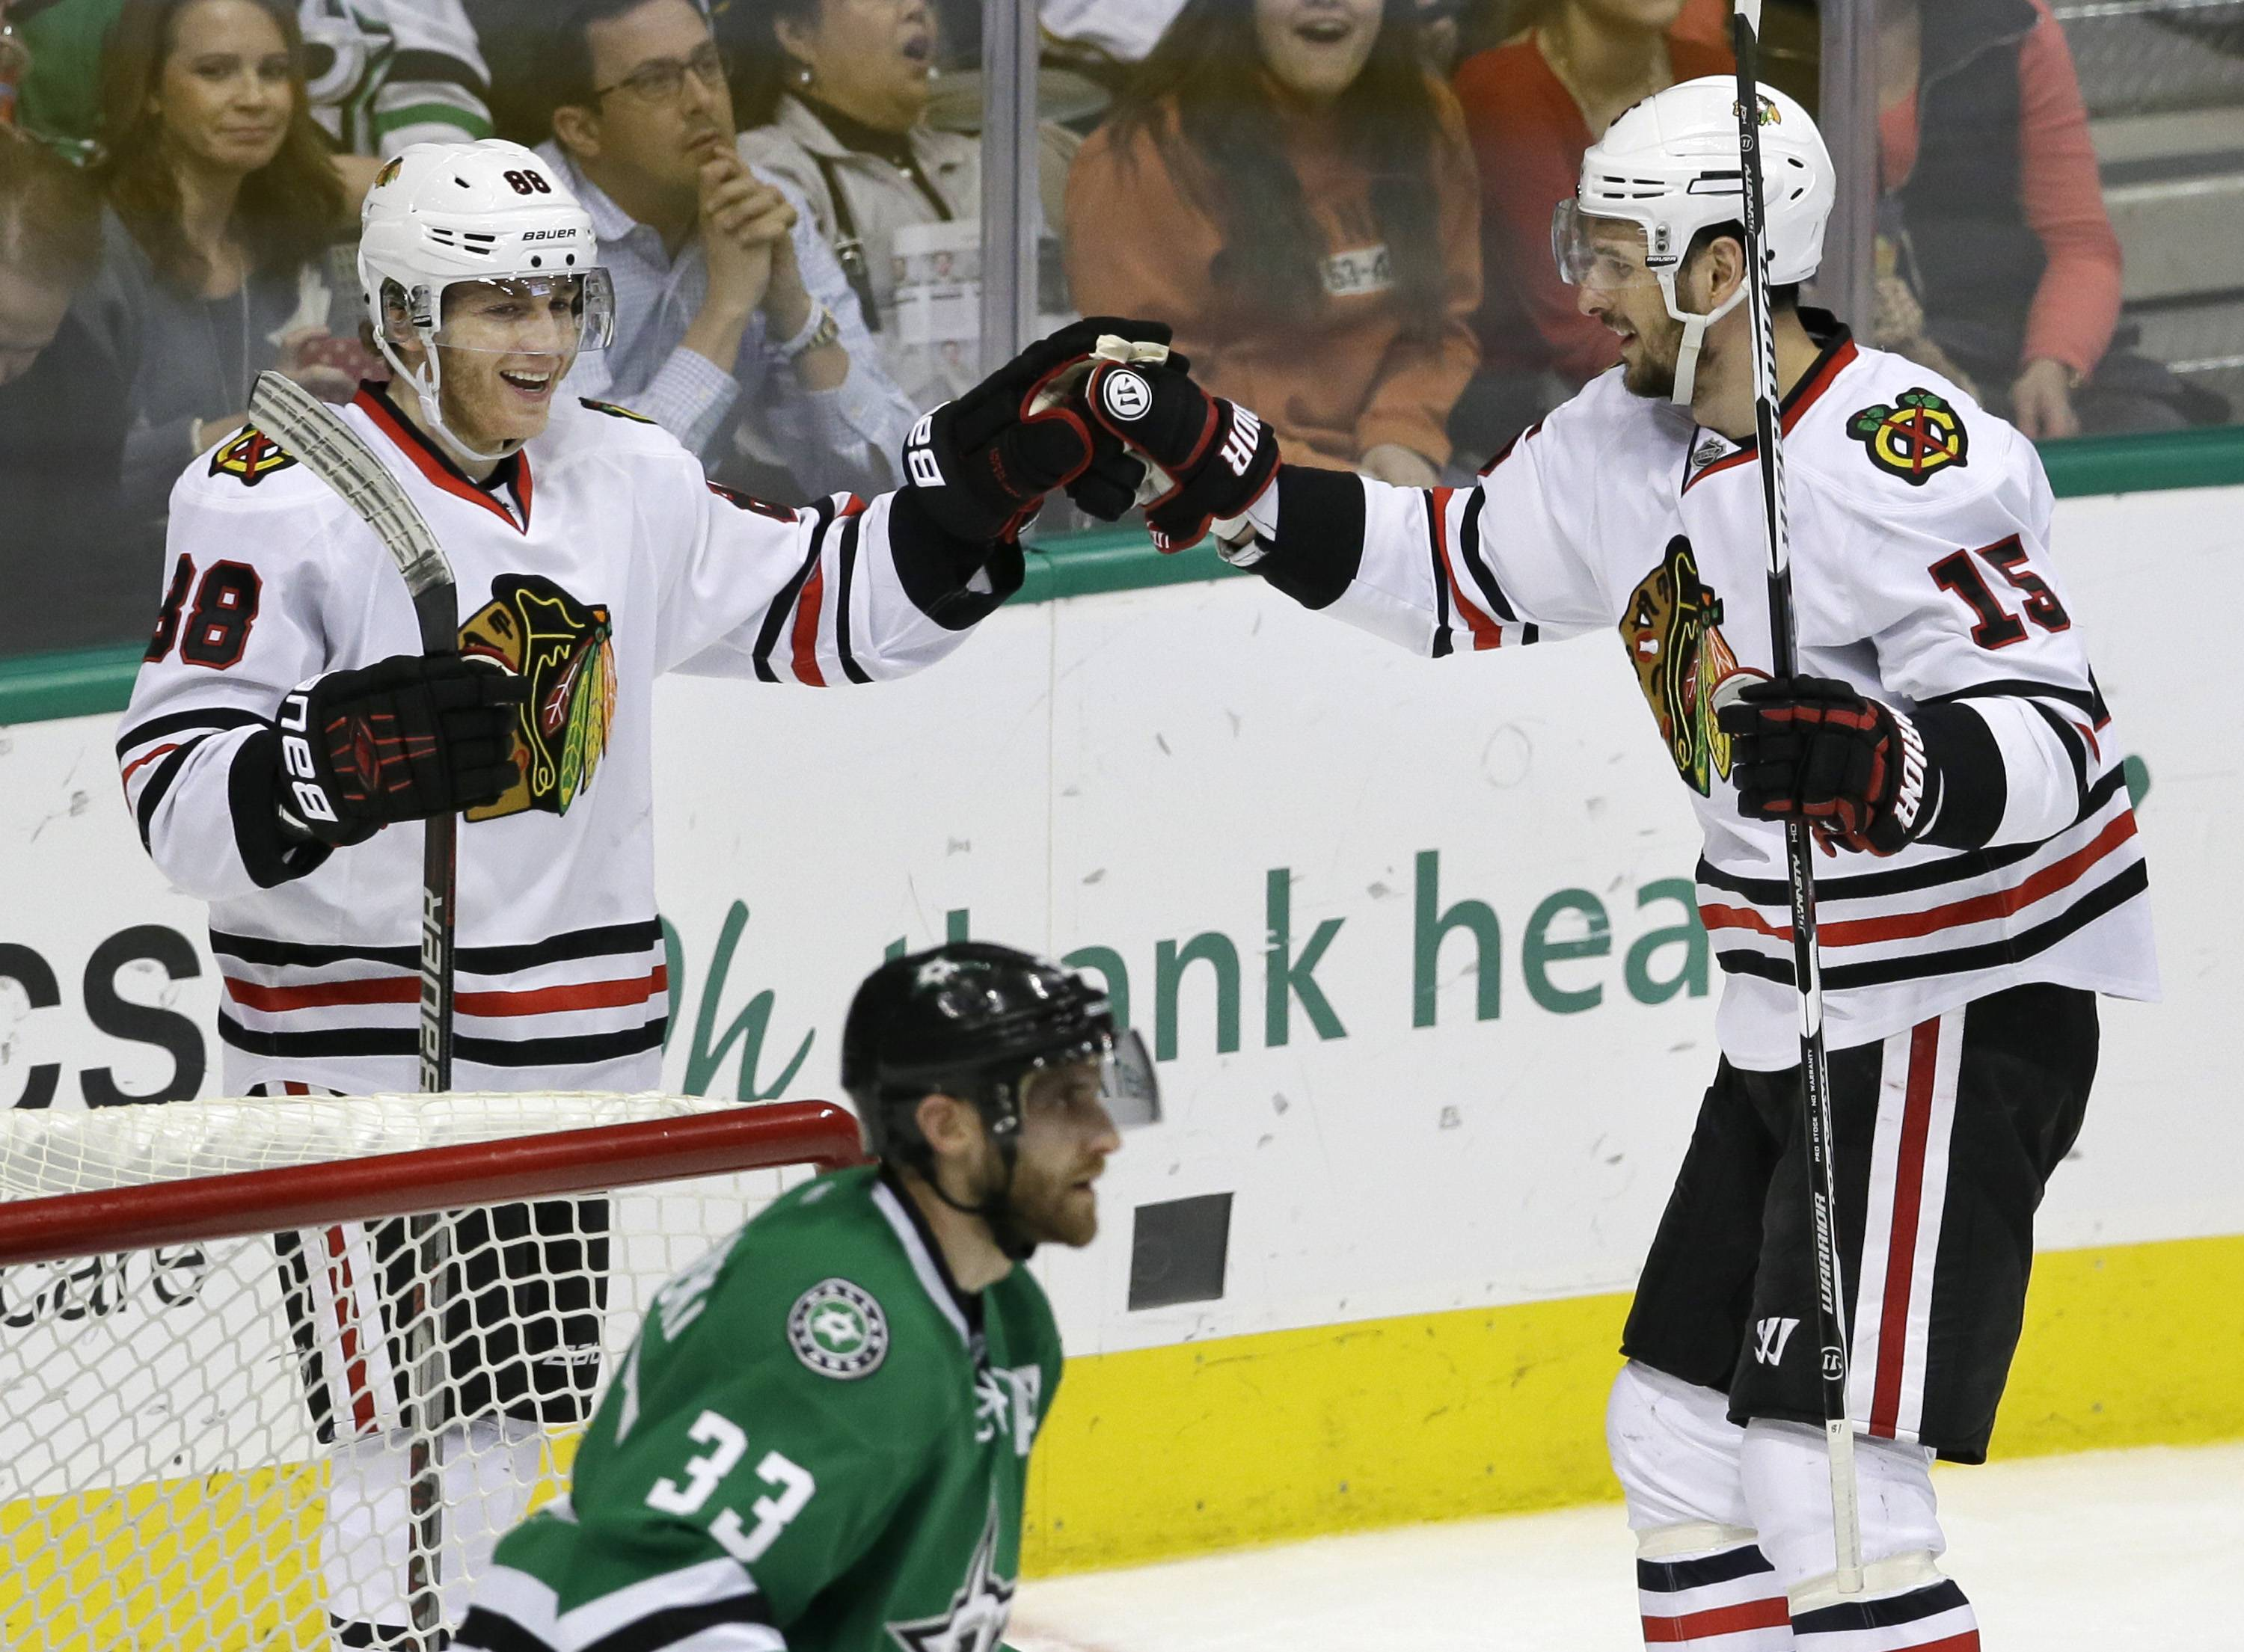 Chicago Blackhawks right wing Patrick Kane (88) celebrates scoring his goal with teammate Chicago Blackhawks center Artem Anisimov (15) as Dallas Stars defenseman Alex Goligoski (33) skates off during the second period of an NHL hockey game Saturday, Feb. 6, 2016, in Dallas. (AP Photo/LM Otero)